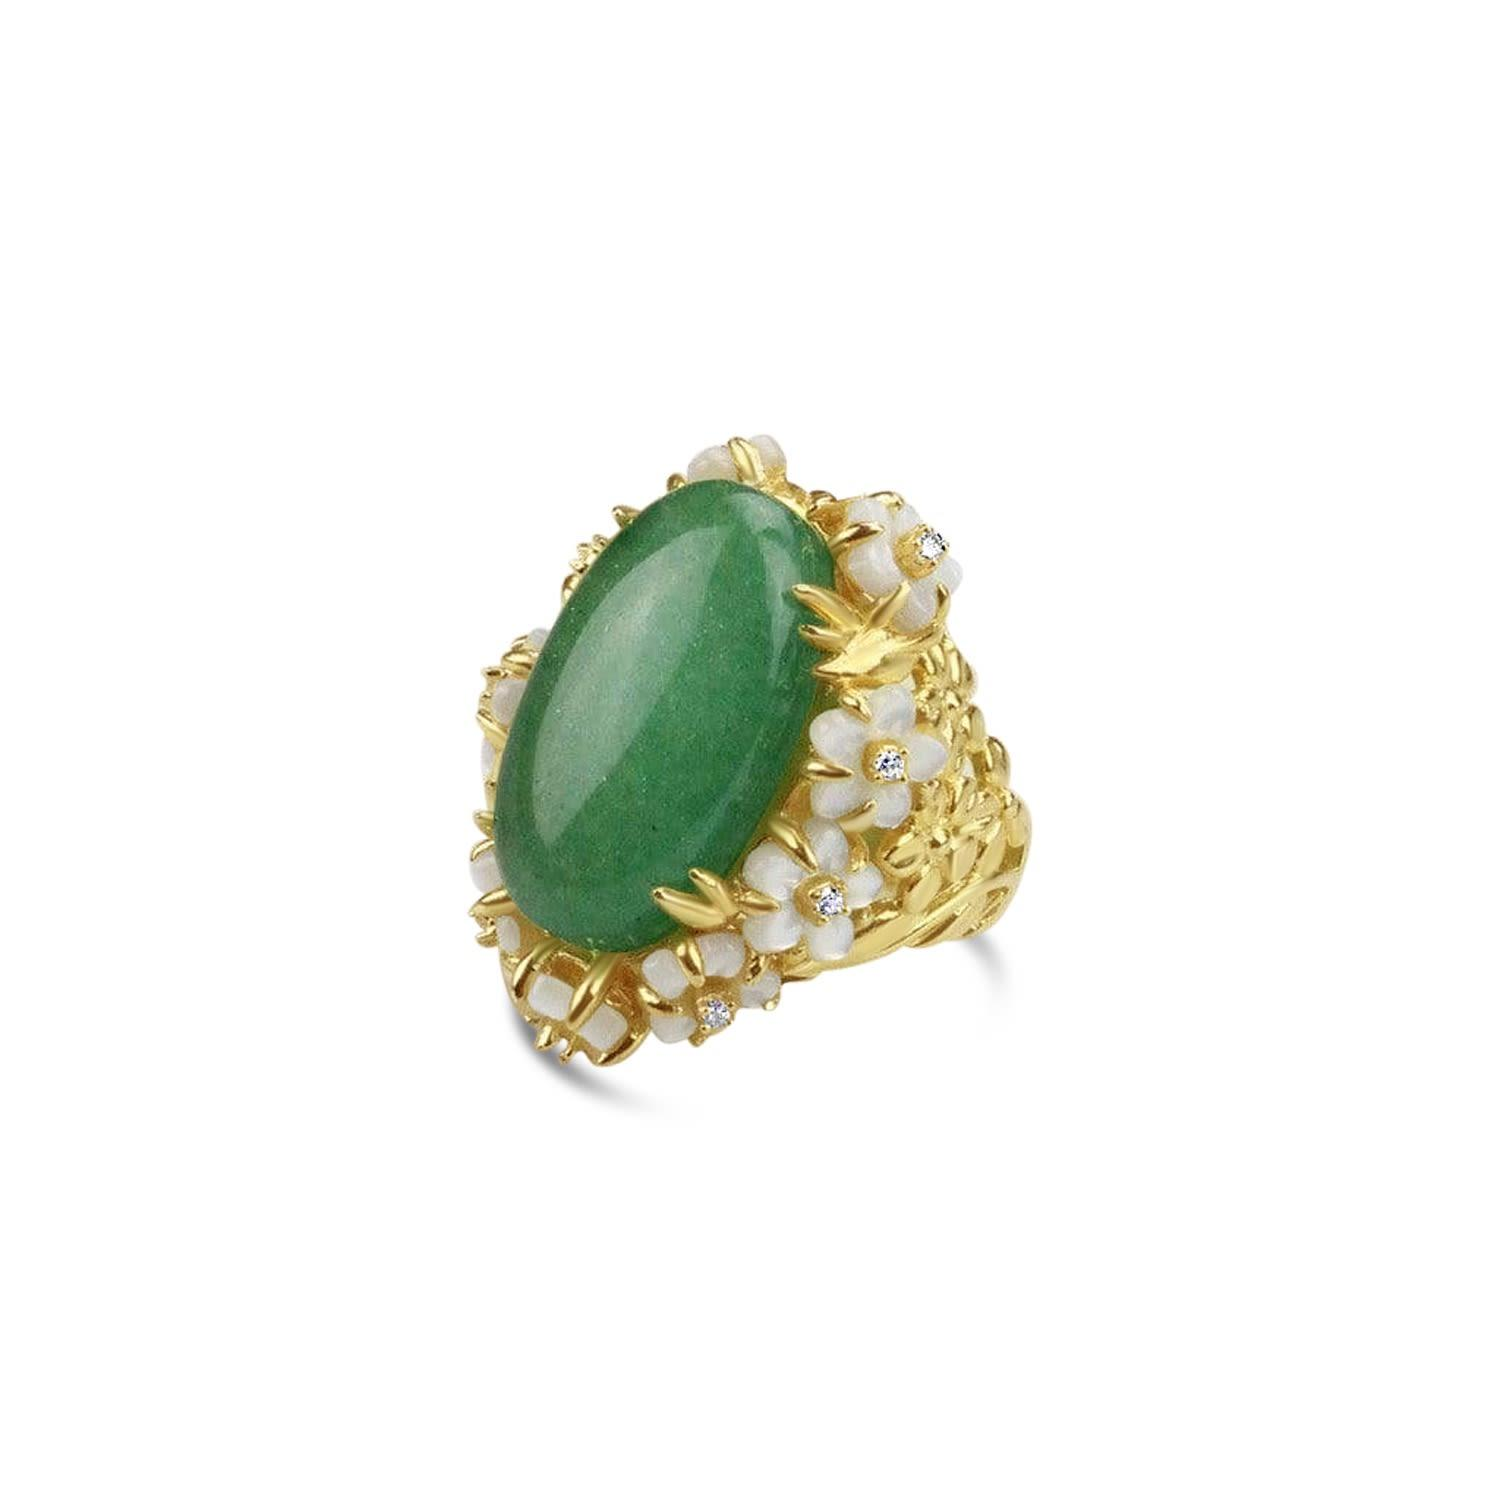 Bellus Domina Gold Plated Green Aventurine Cocktail Ring